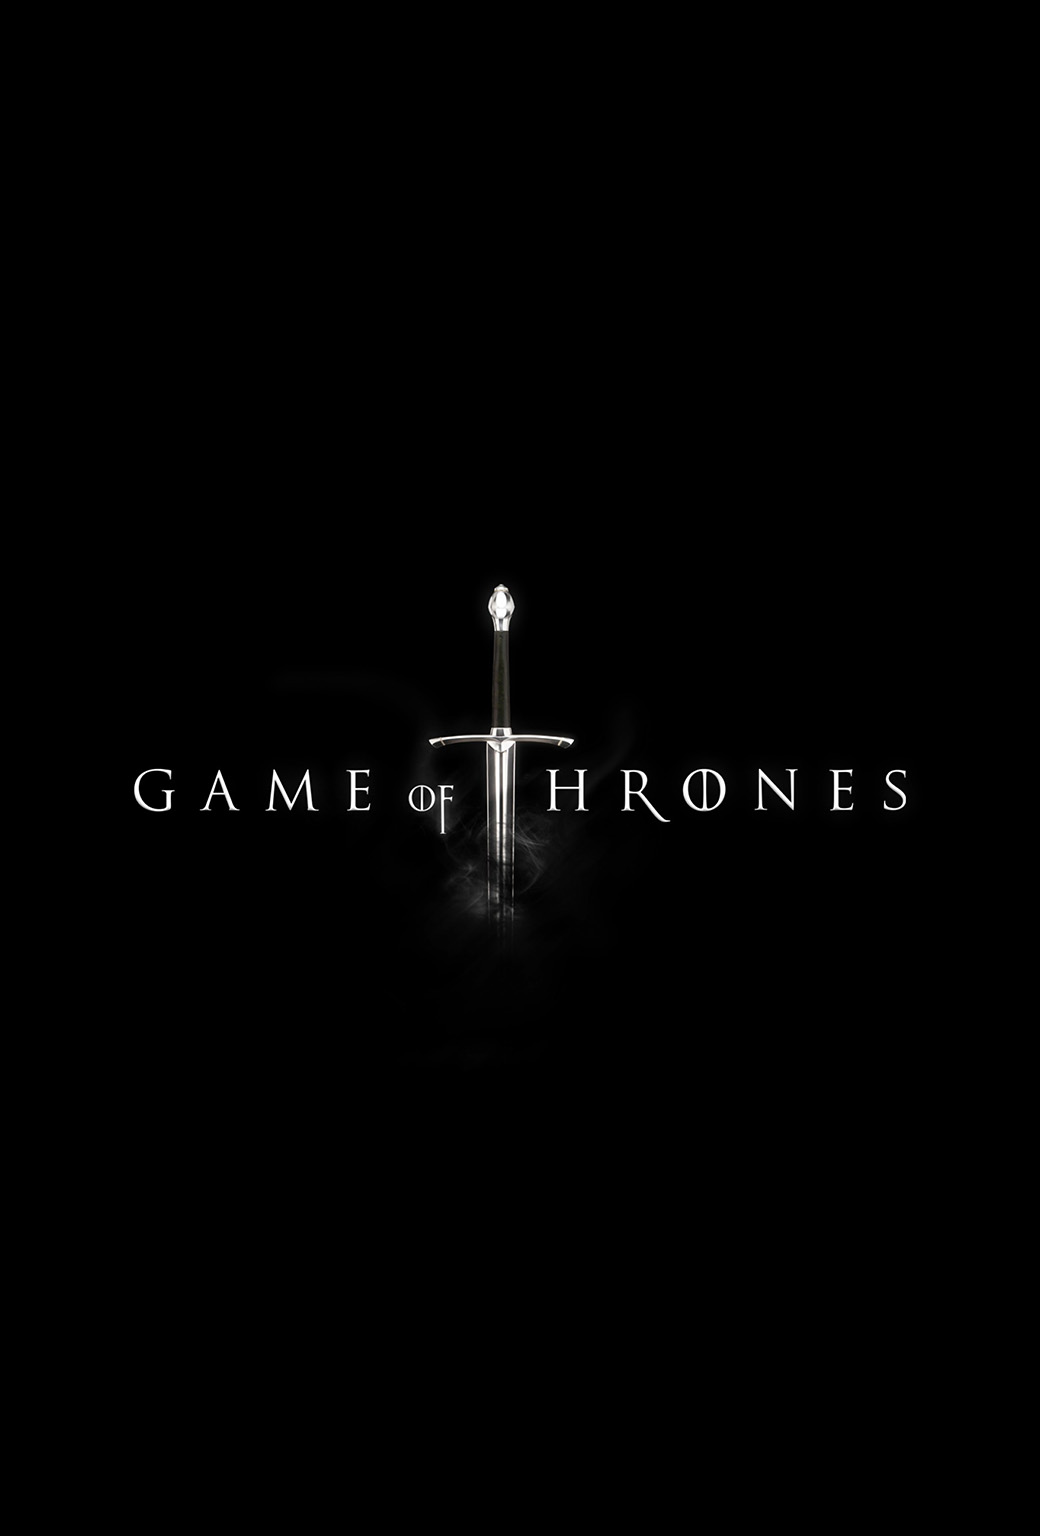 Really Cool 3d Wallpapers Game Of Thrones Wallpapers For Iphone And Ipad